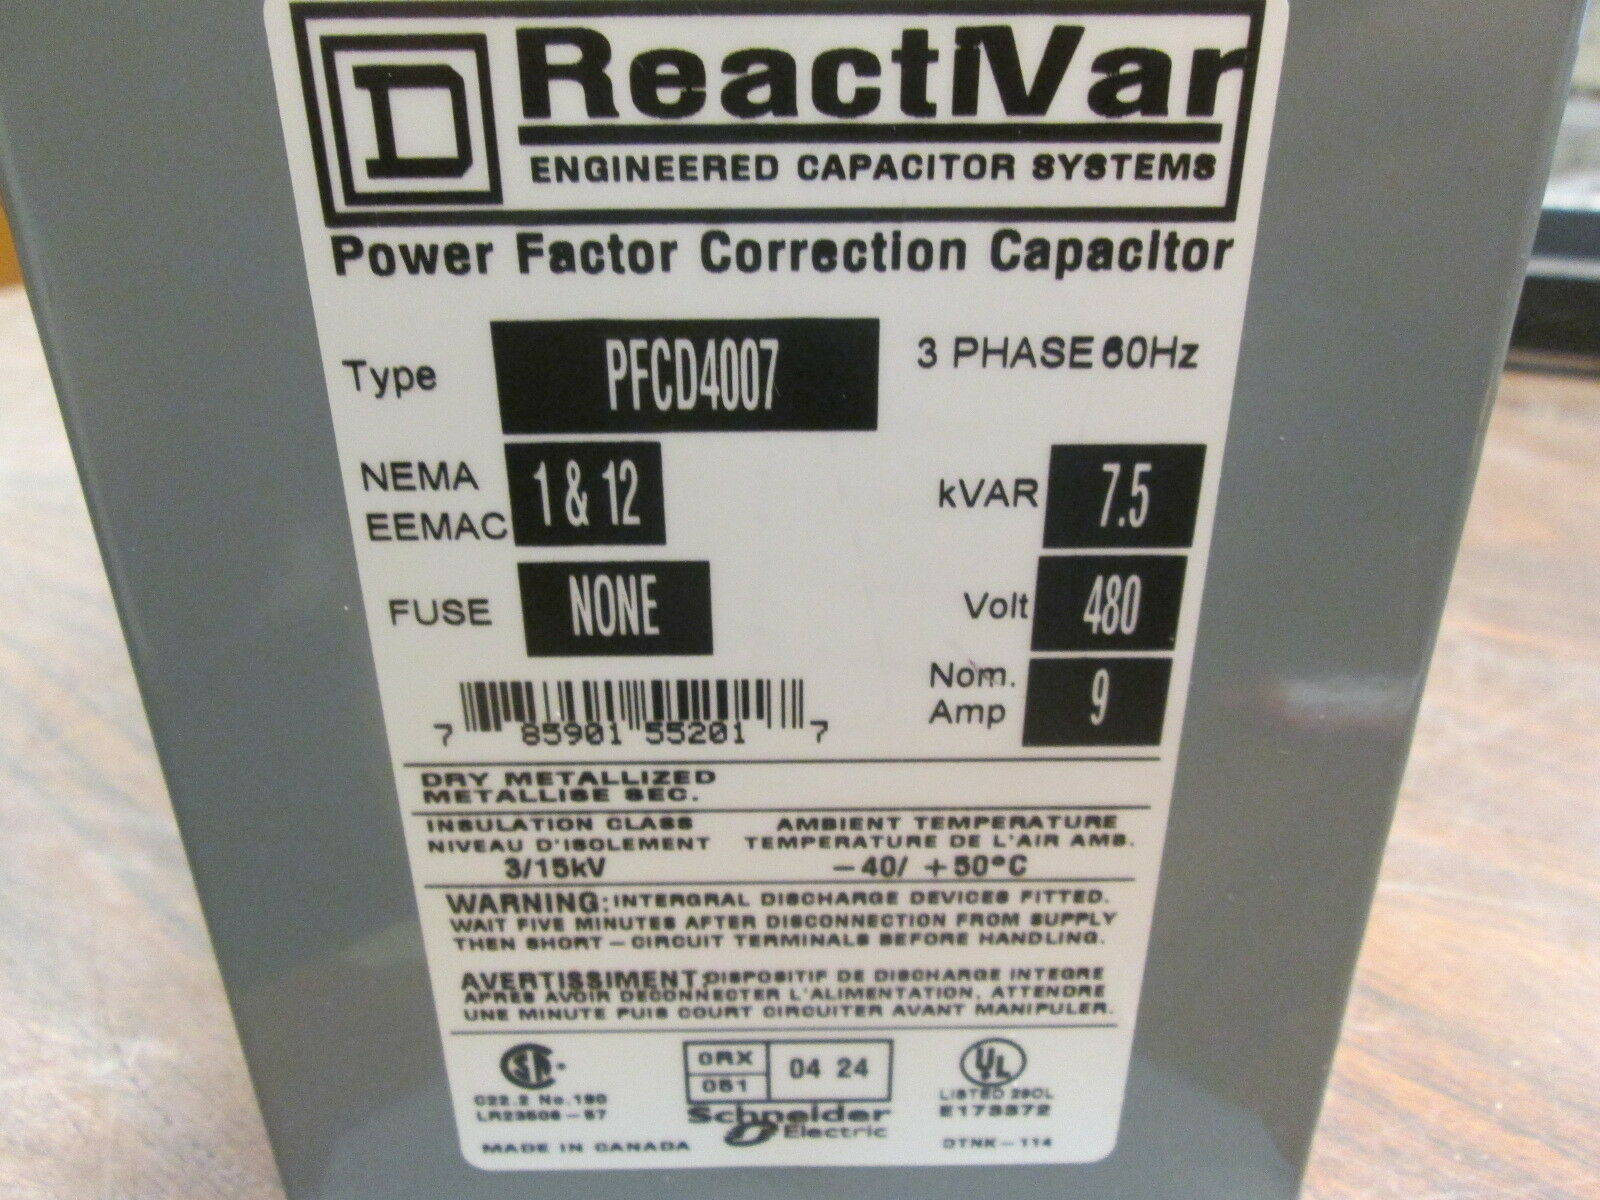 Square D Pfcd4007 Power Factor Correction Capacitor Ebay Capacitors